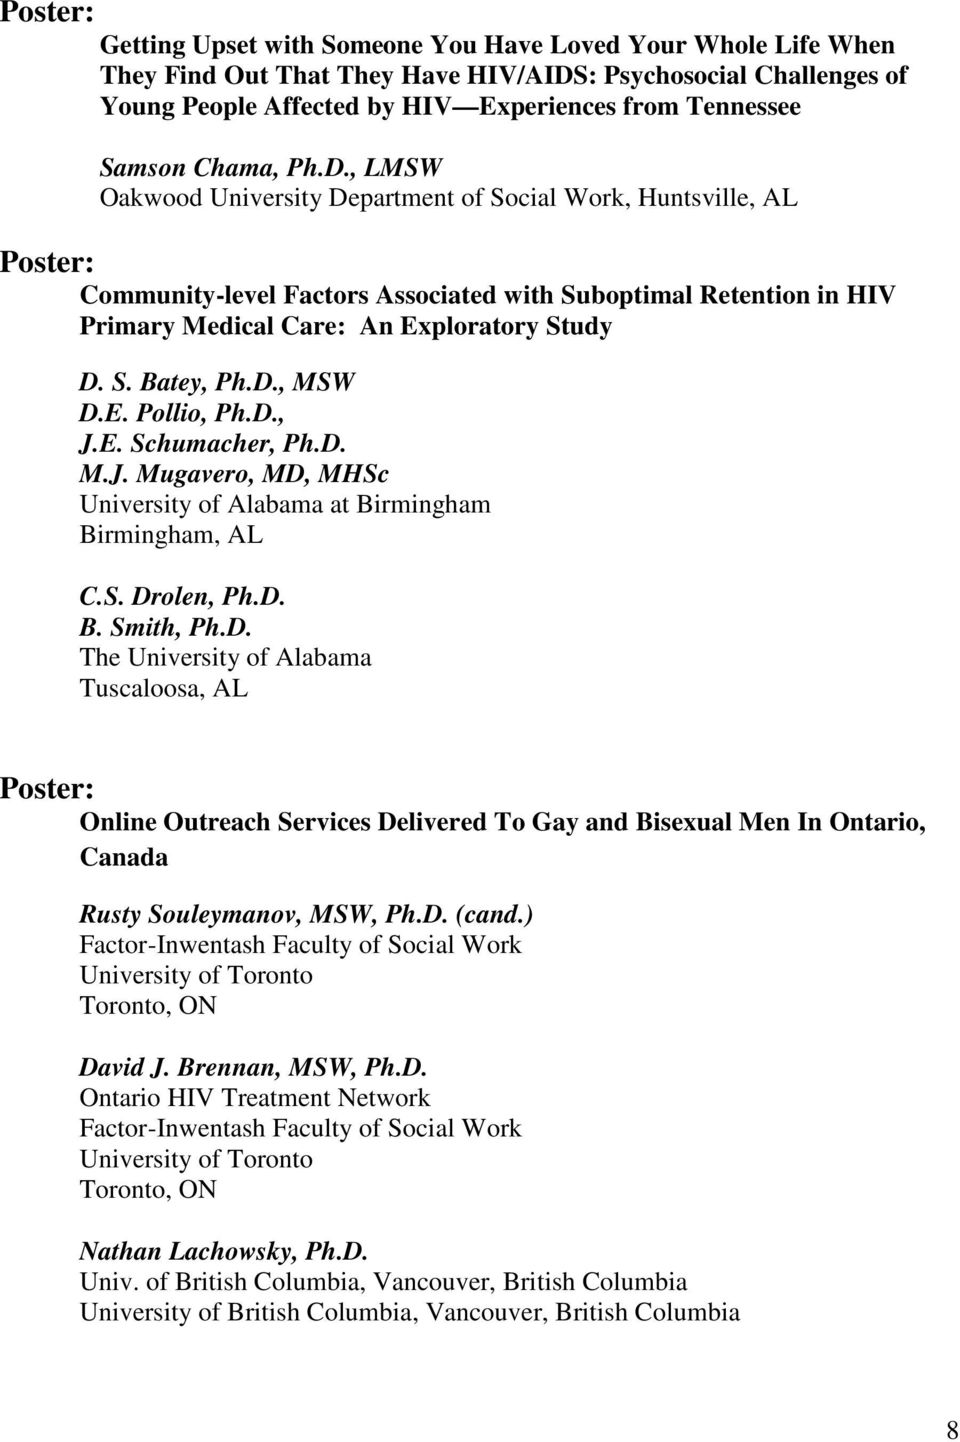 , LMSW Oakwood University Department of Social Work, Huntsville, AL Poster: Community-level Factors Associated with Suboptimal Retention in HIV Primary Medical Care: An Exploratory Study D. S. Batey, Ph.